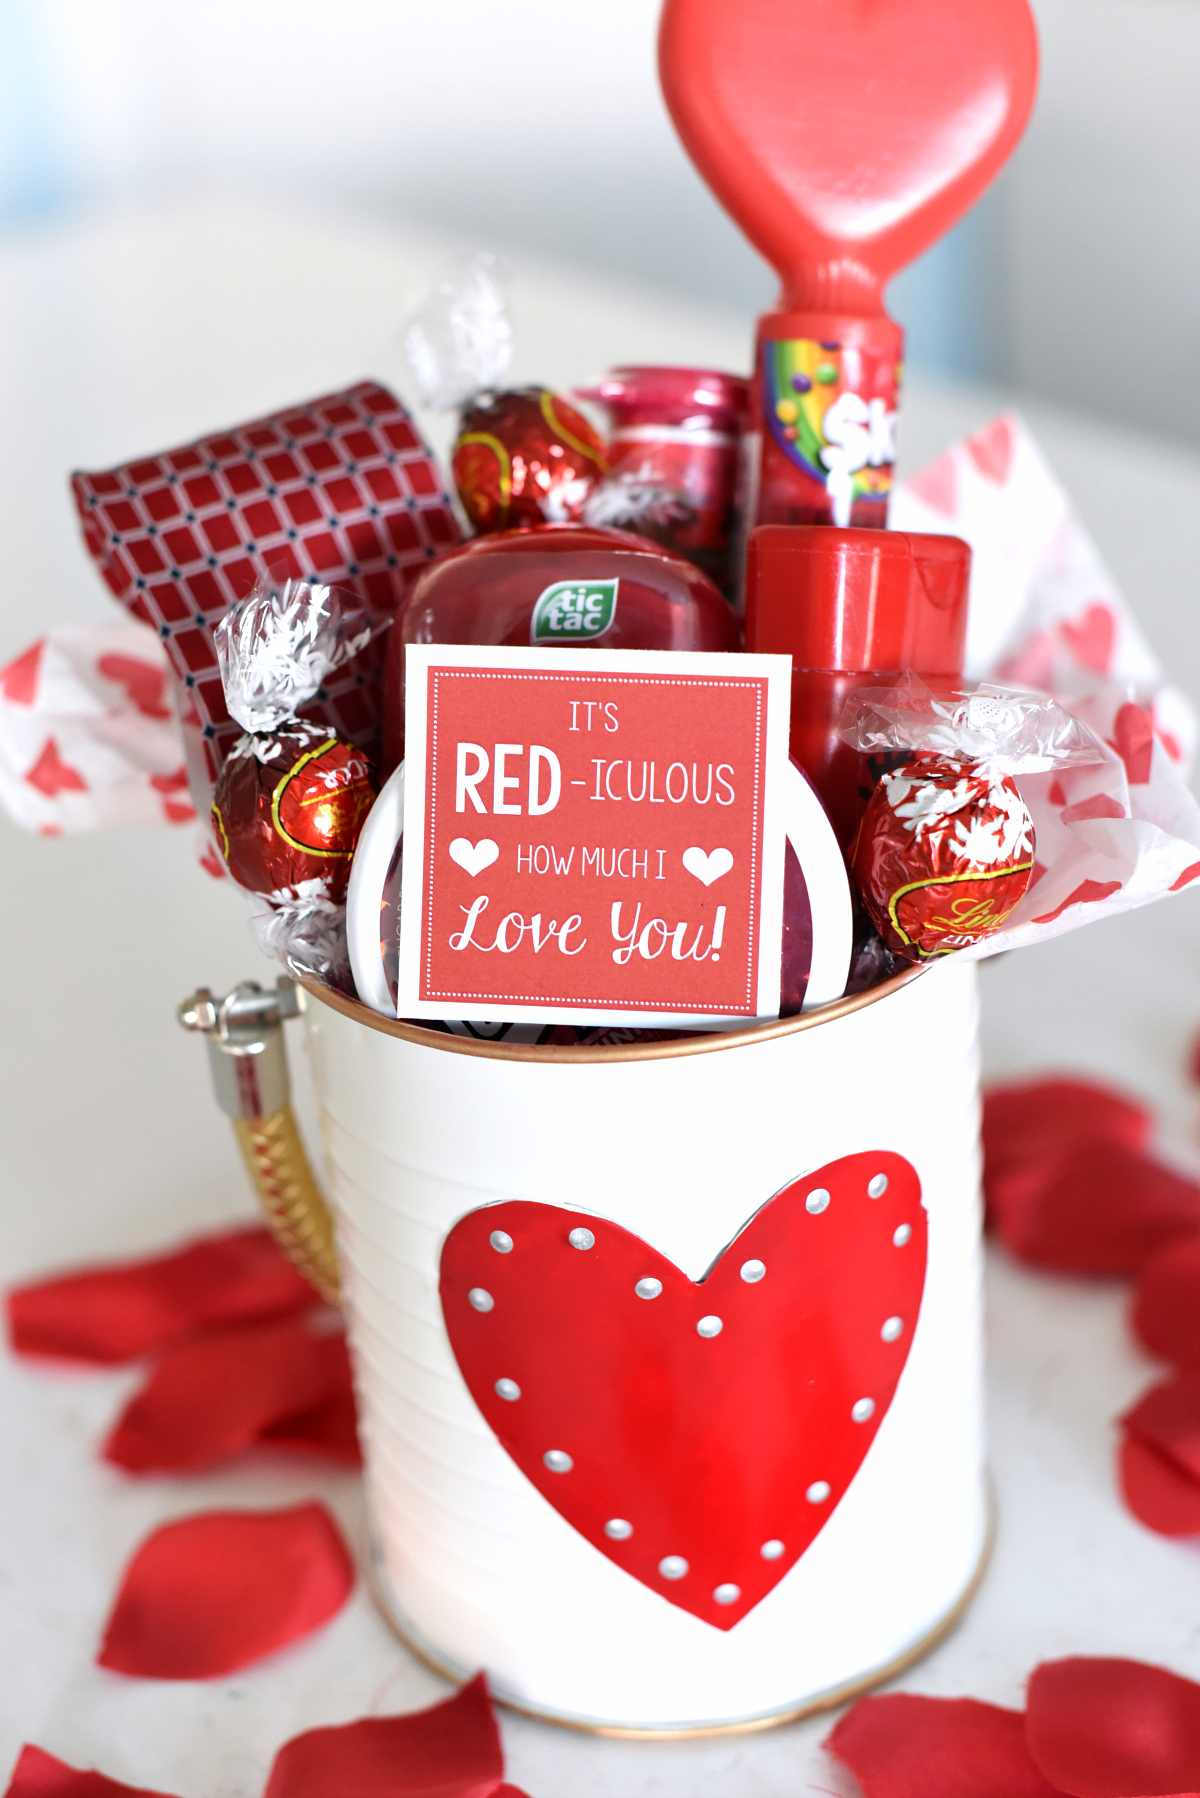 10 Elegant Good Gift Ideas For Valentines Day 25 diy valentines day gift ideas teens will love raising teens today